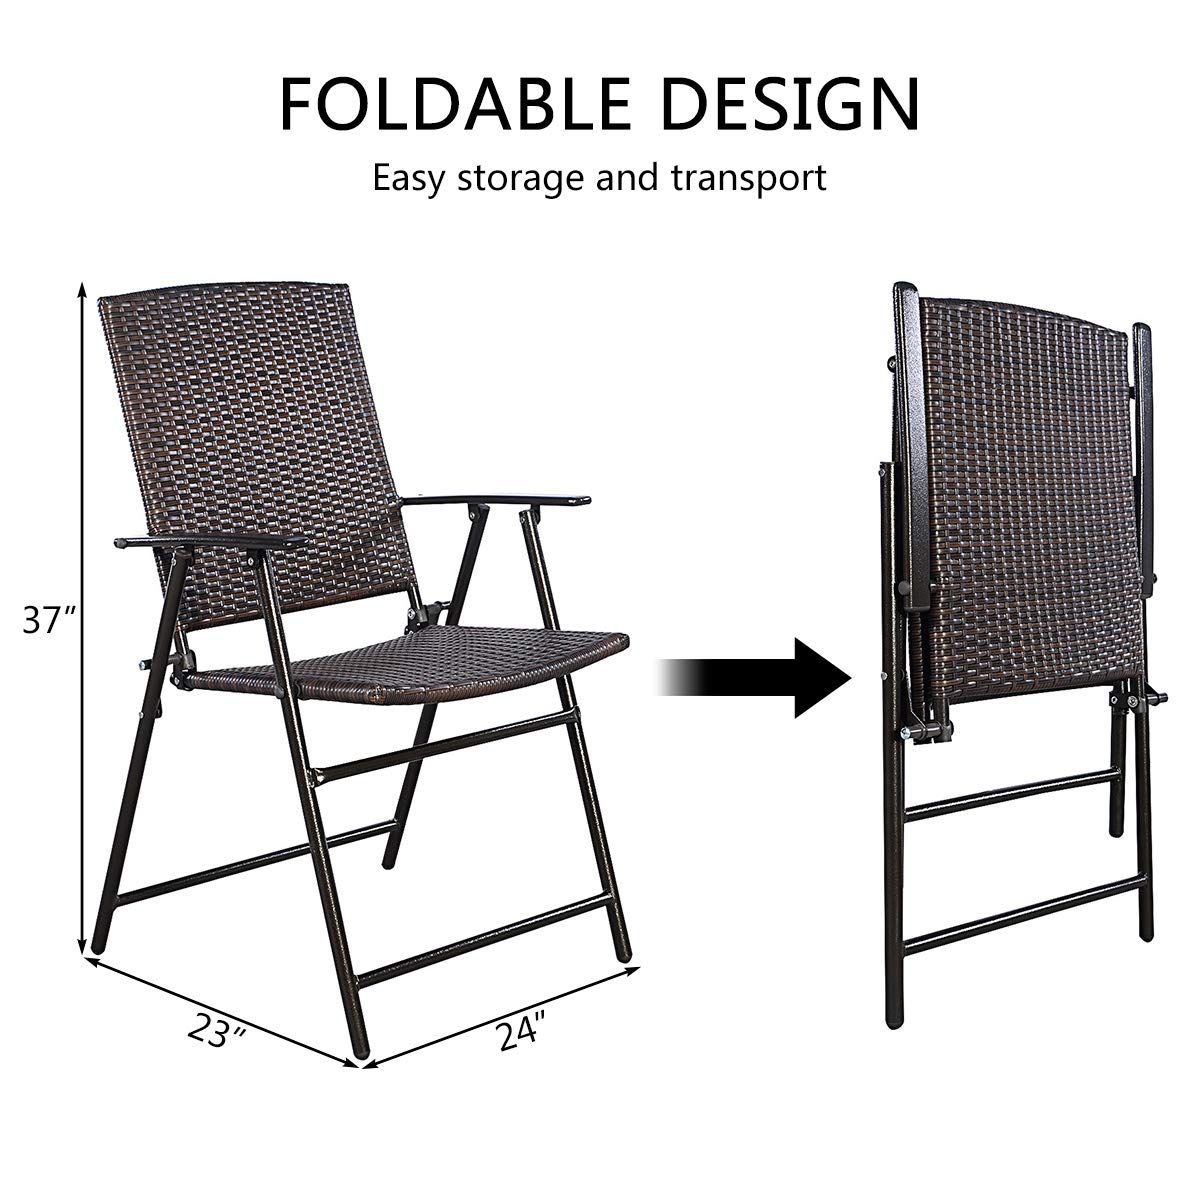 Tangkula 4 PCS Folding Patio Chair Set Outdoor Pool Lawn Portable Wicker Chair with Armrest & Footrest Durable Rattan Steel Frame Commercial Foldable Stackable Party Wedding Chair Set (24X23X37) by Tangkula (Image #7)